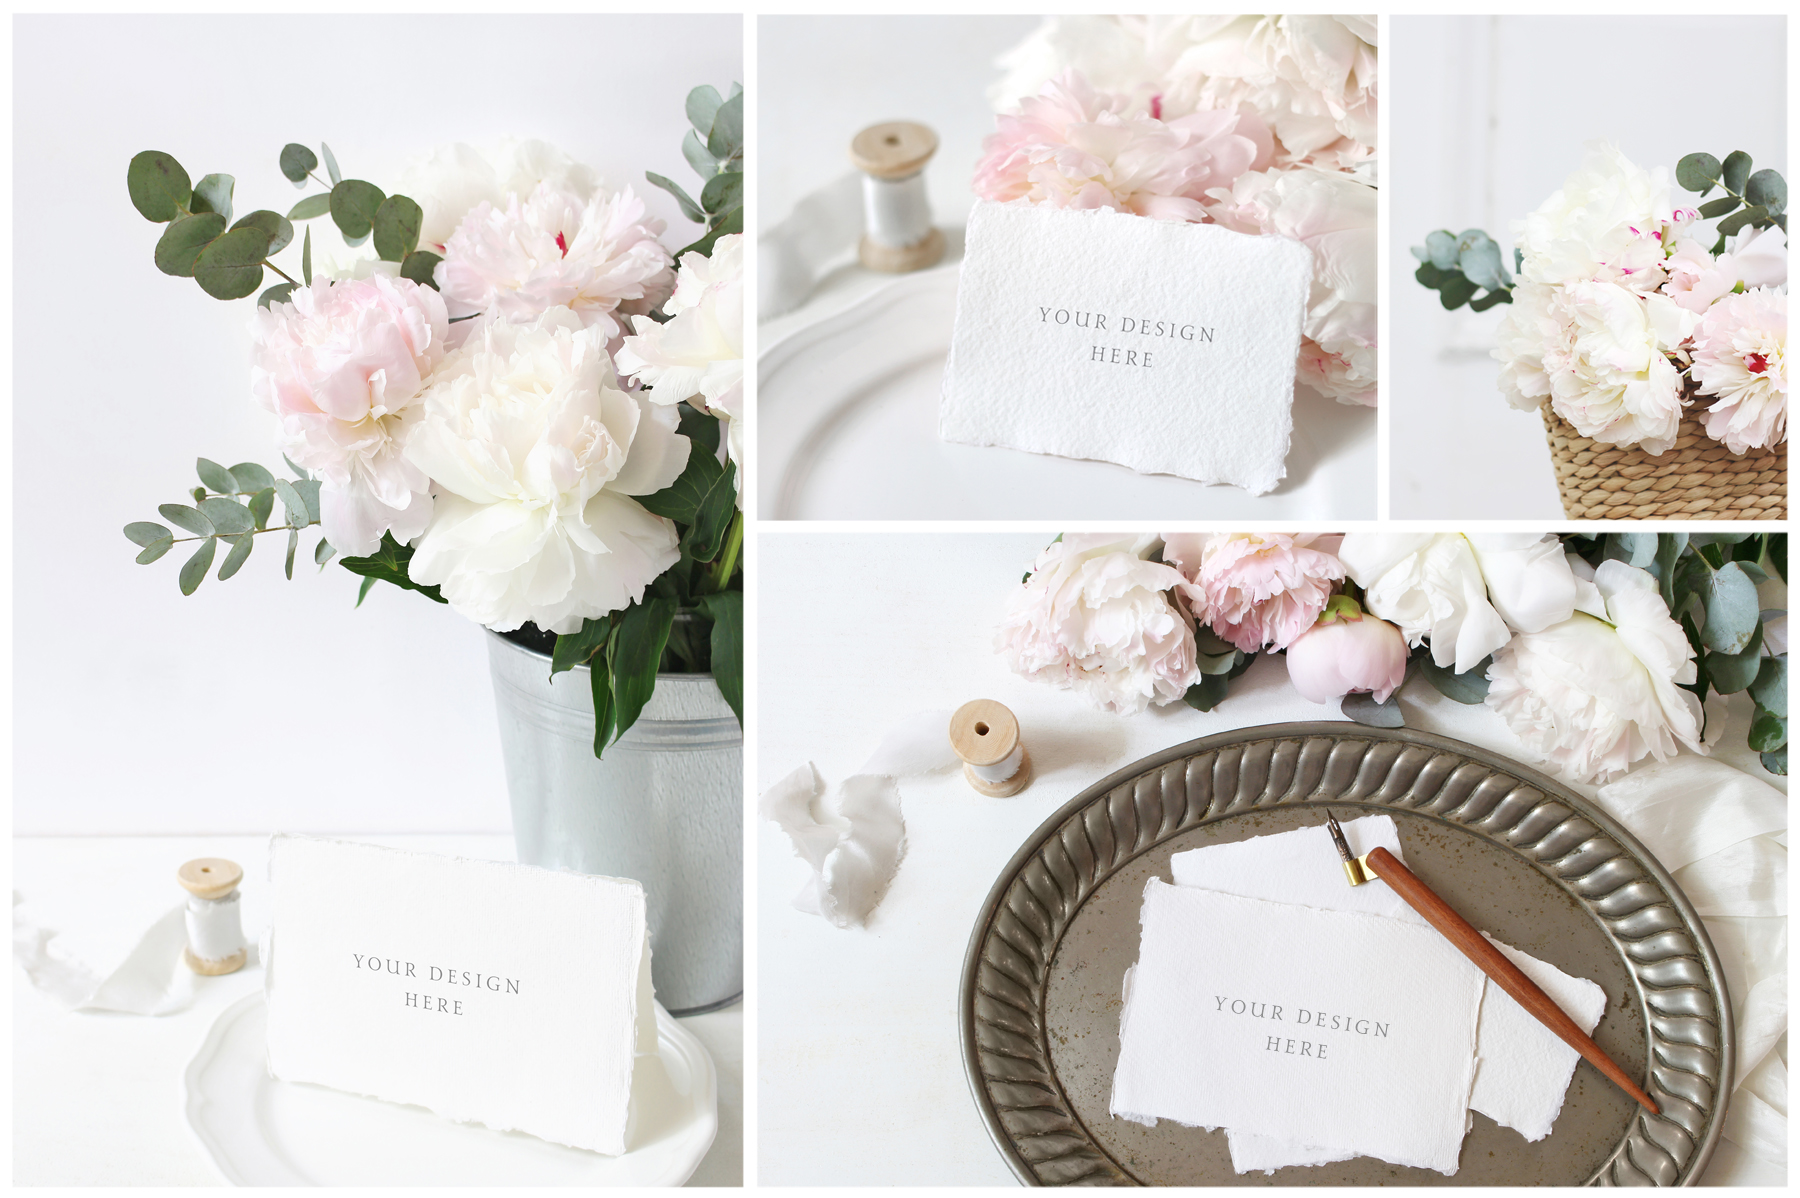 Vintage peony wedding mockups & stock photo bundle example image 3